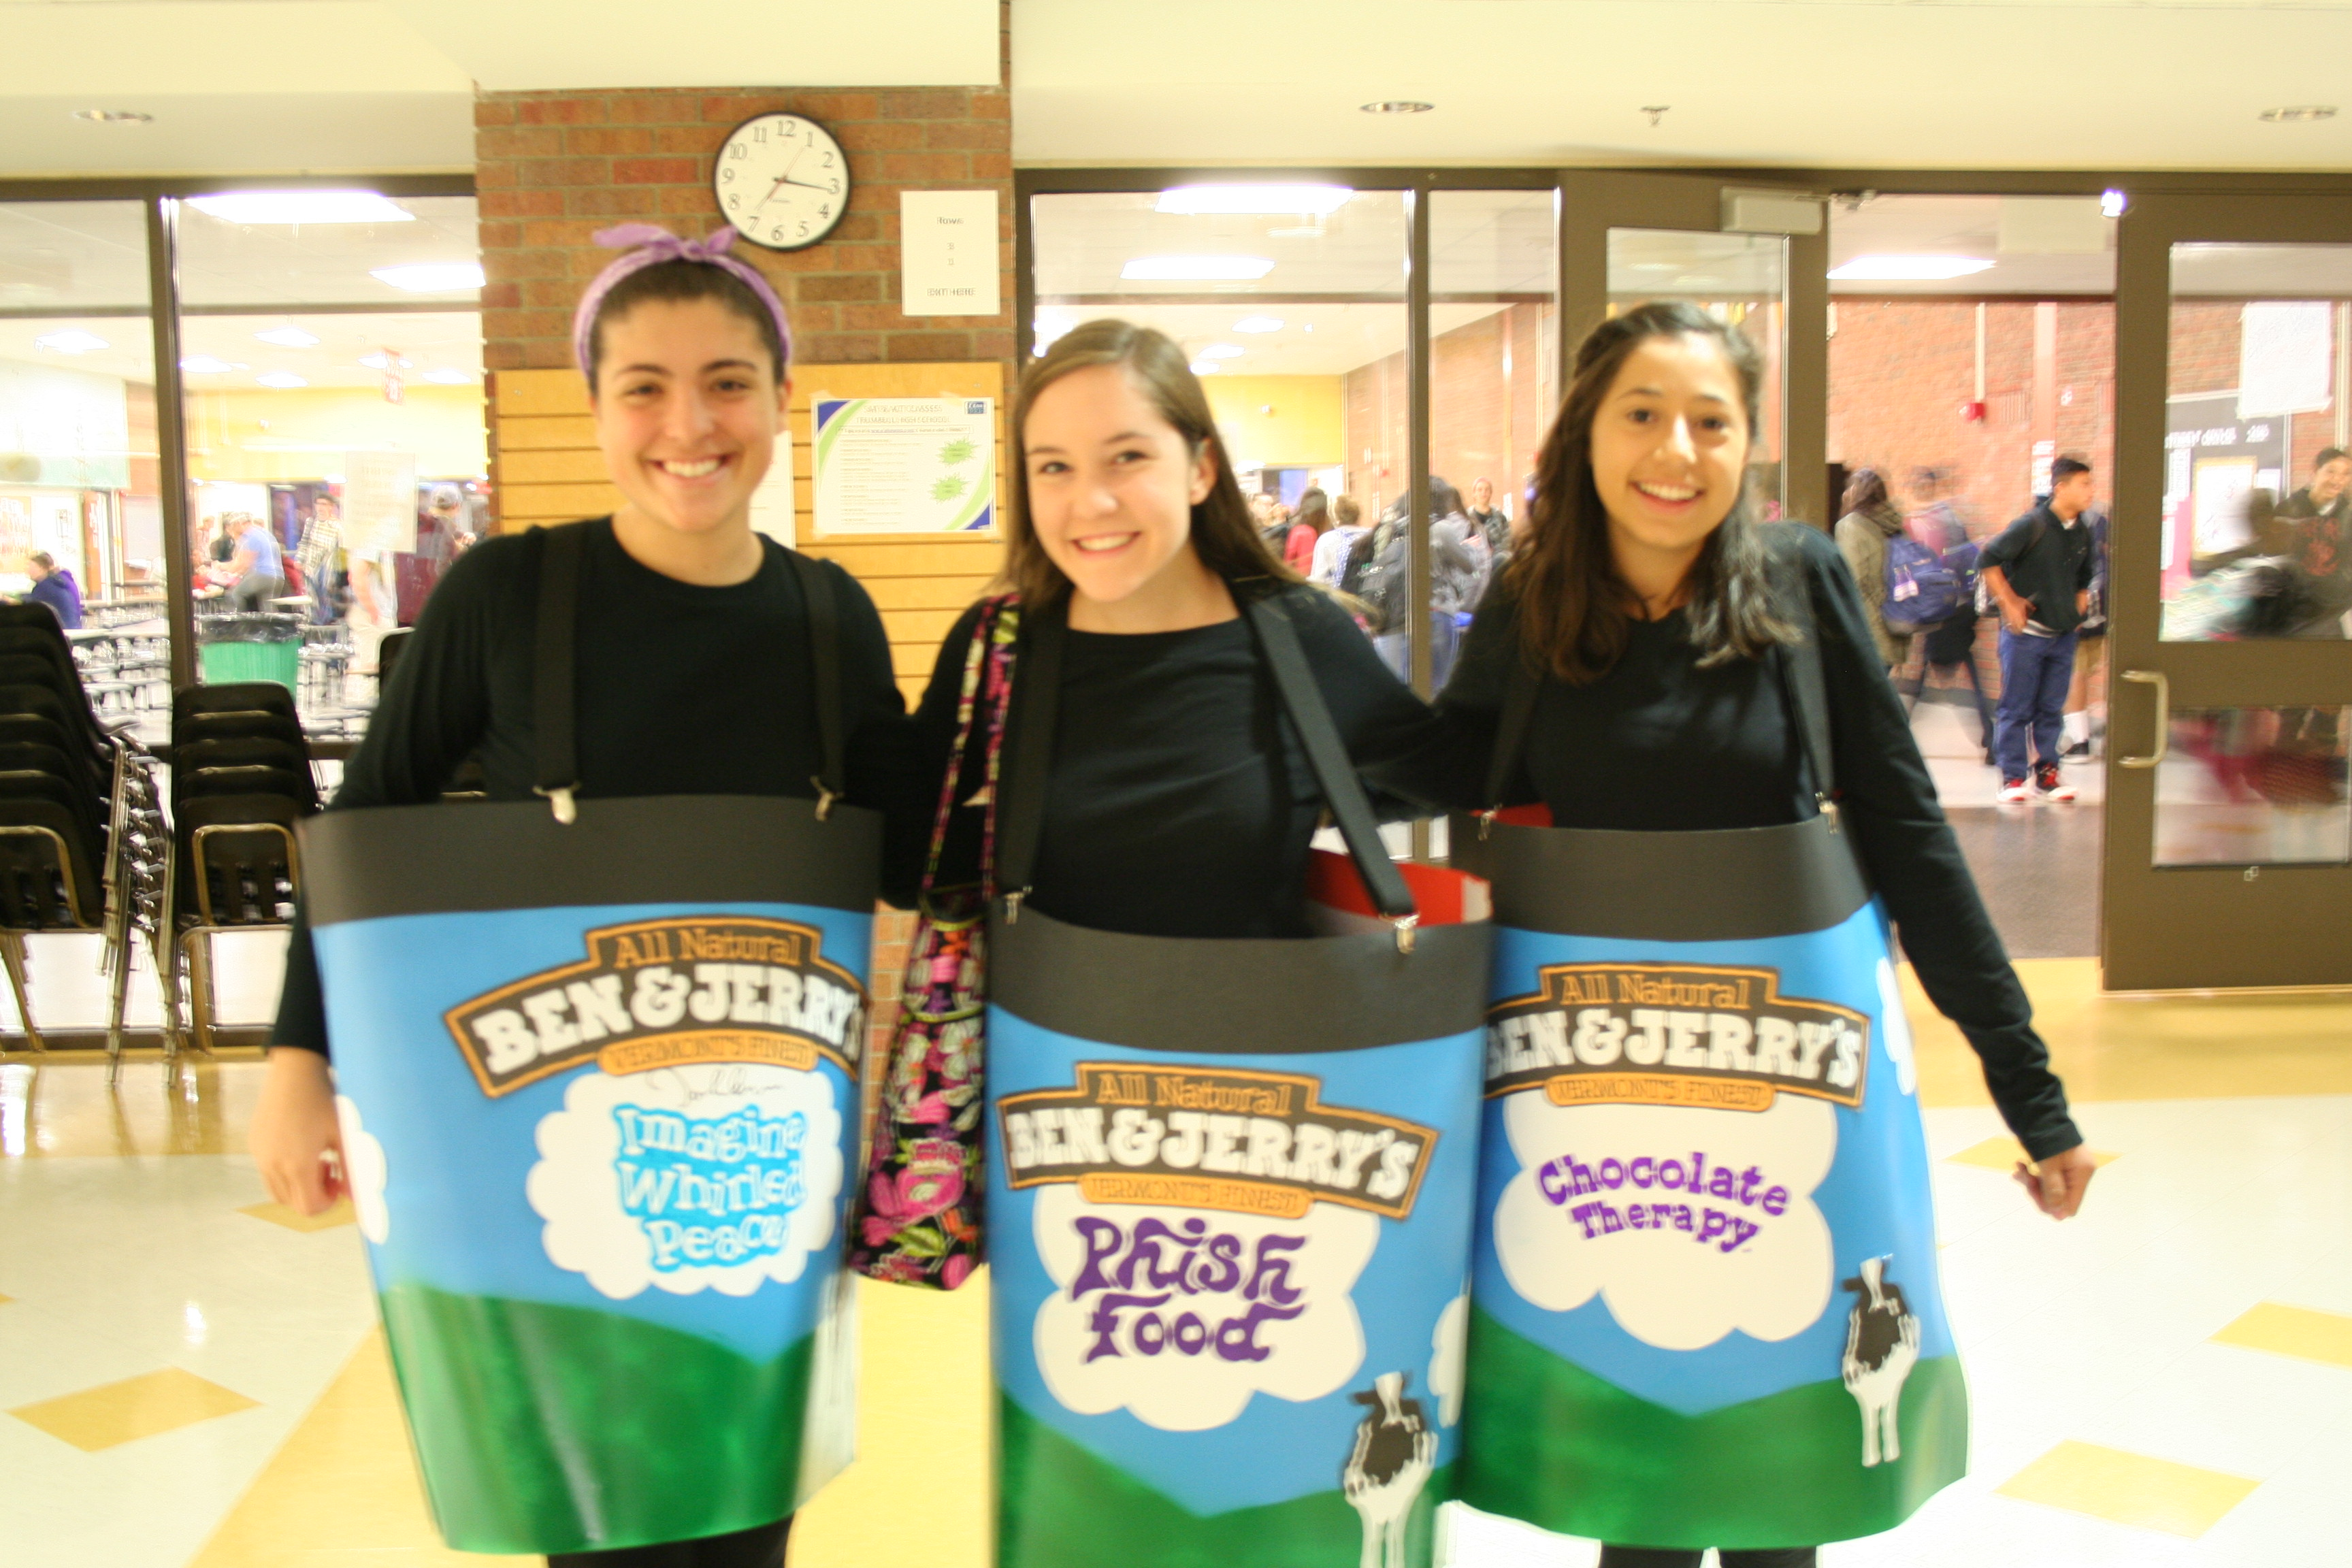 I scream, you scream, we all scream for THS's own Ben and Jerry's ice cream!